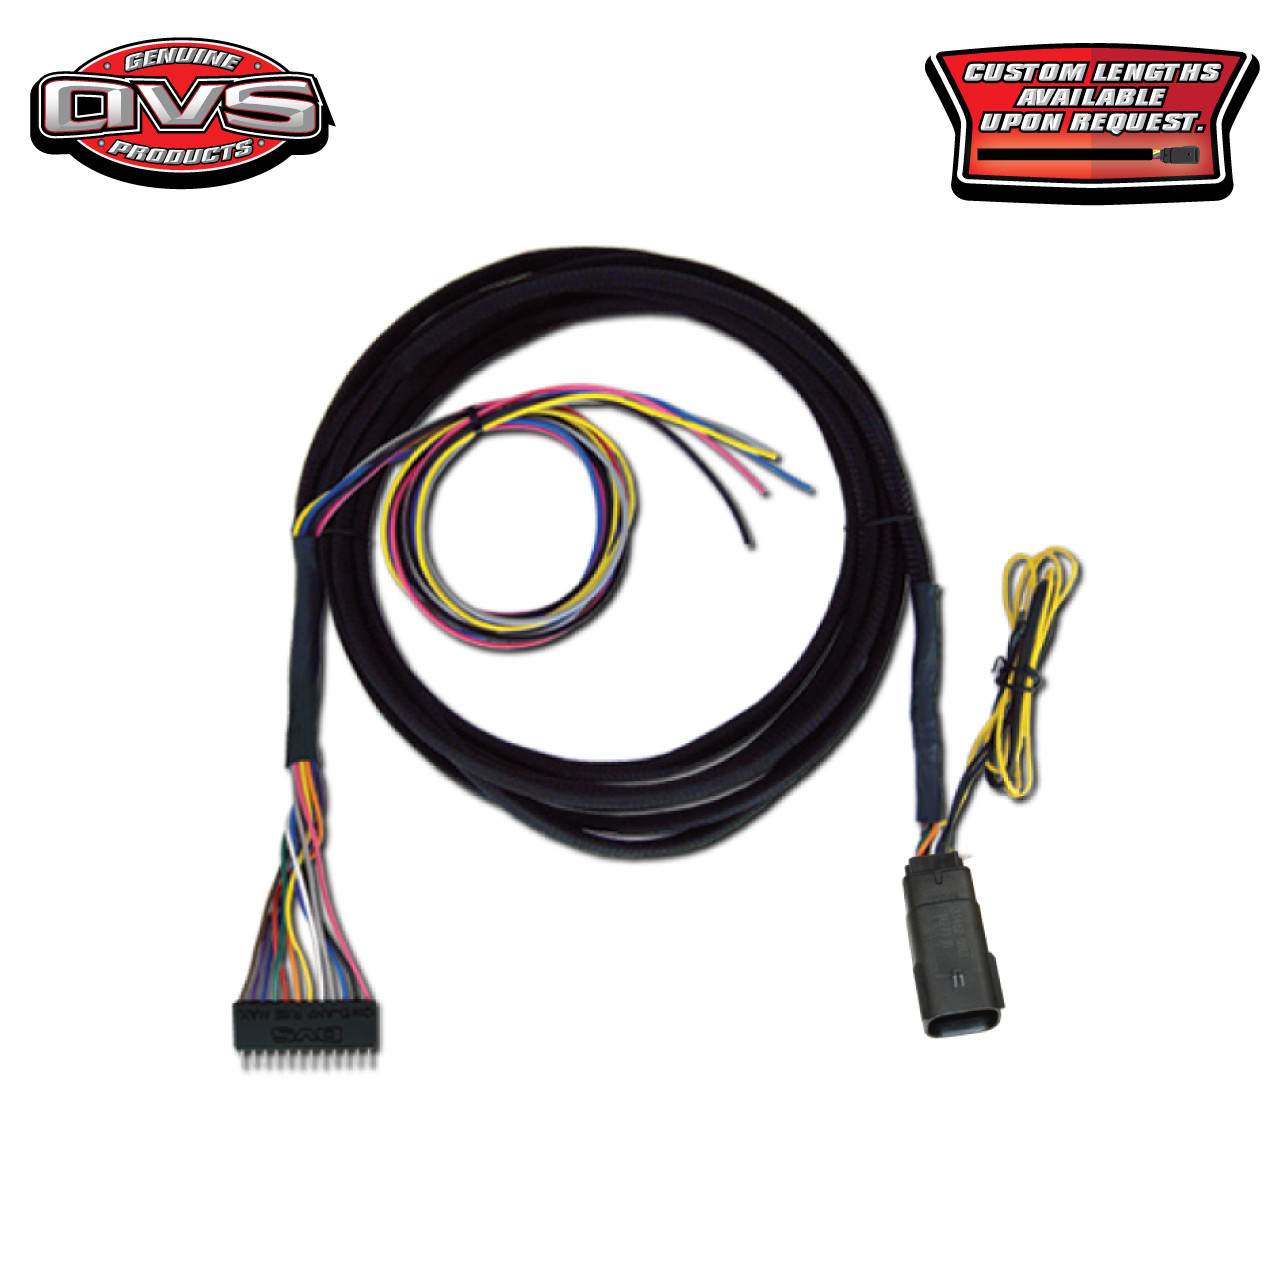 AVS VALVE WIRING HARNESS 10\', 15\', 20\' - ACCUAIR VX4 VALVE TO AVS 9 ...